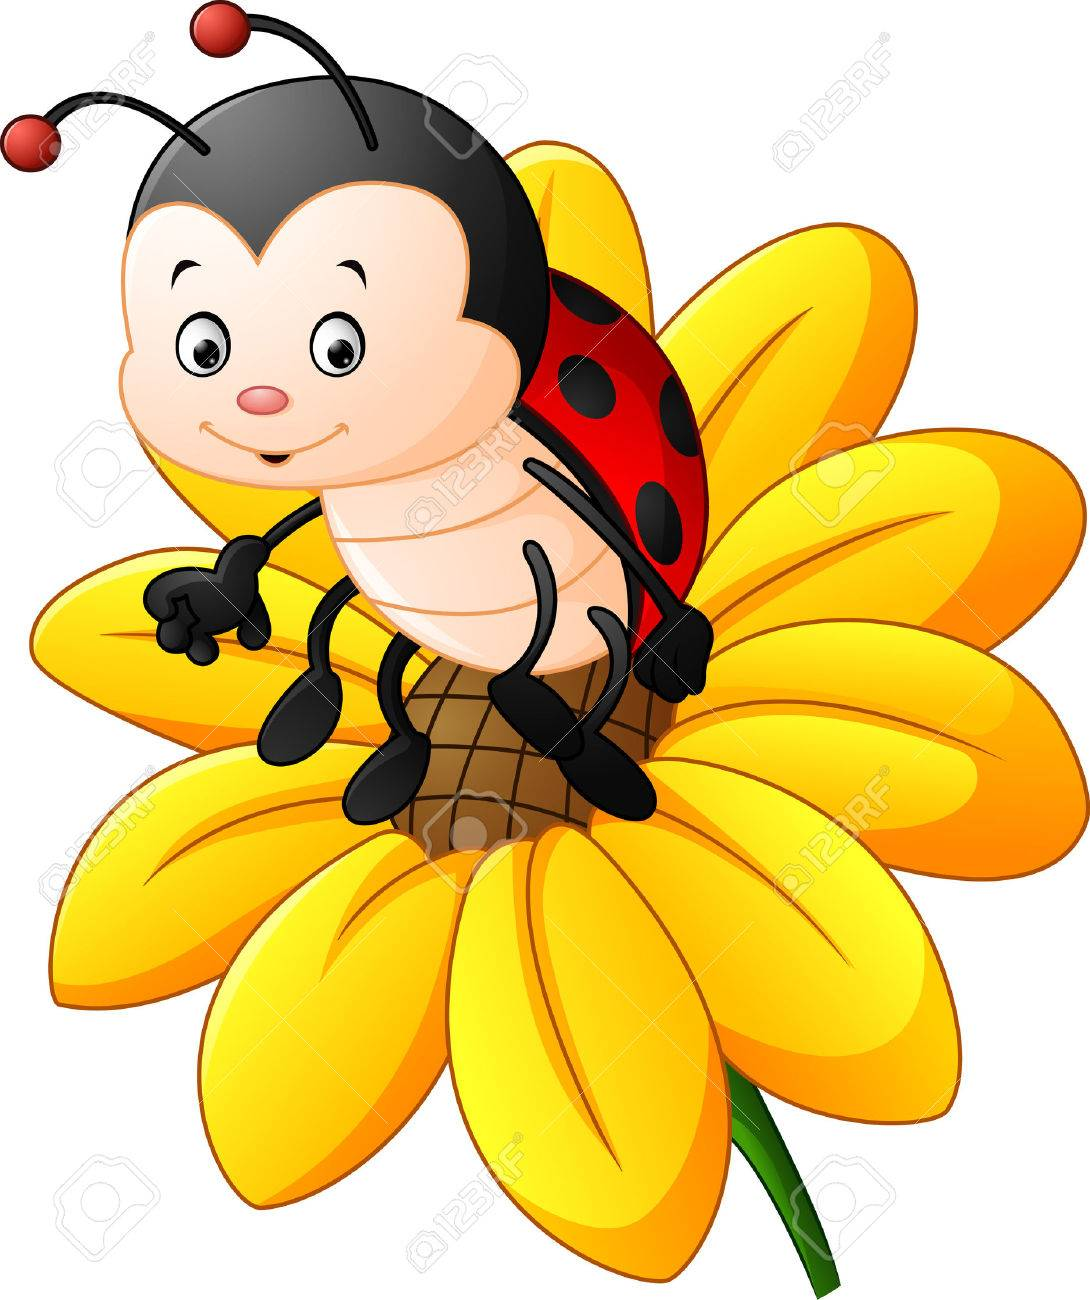 A Cartoon Ladybug cartoon ladybug on the sun flower